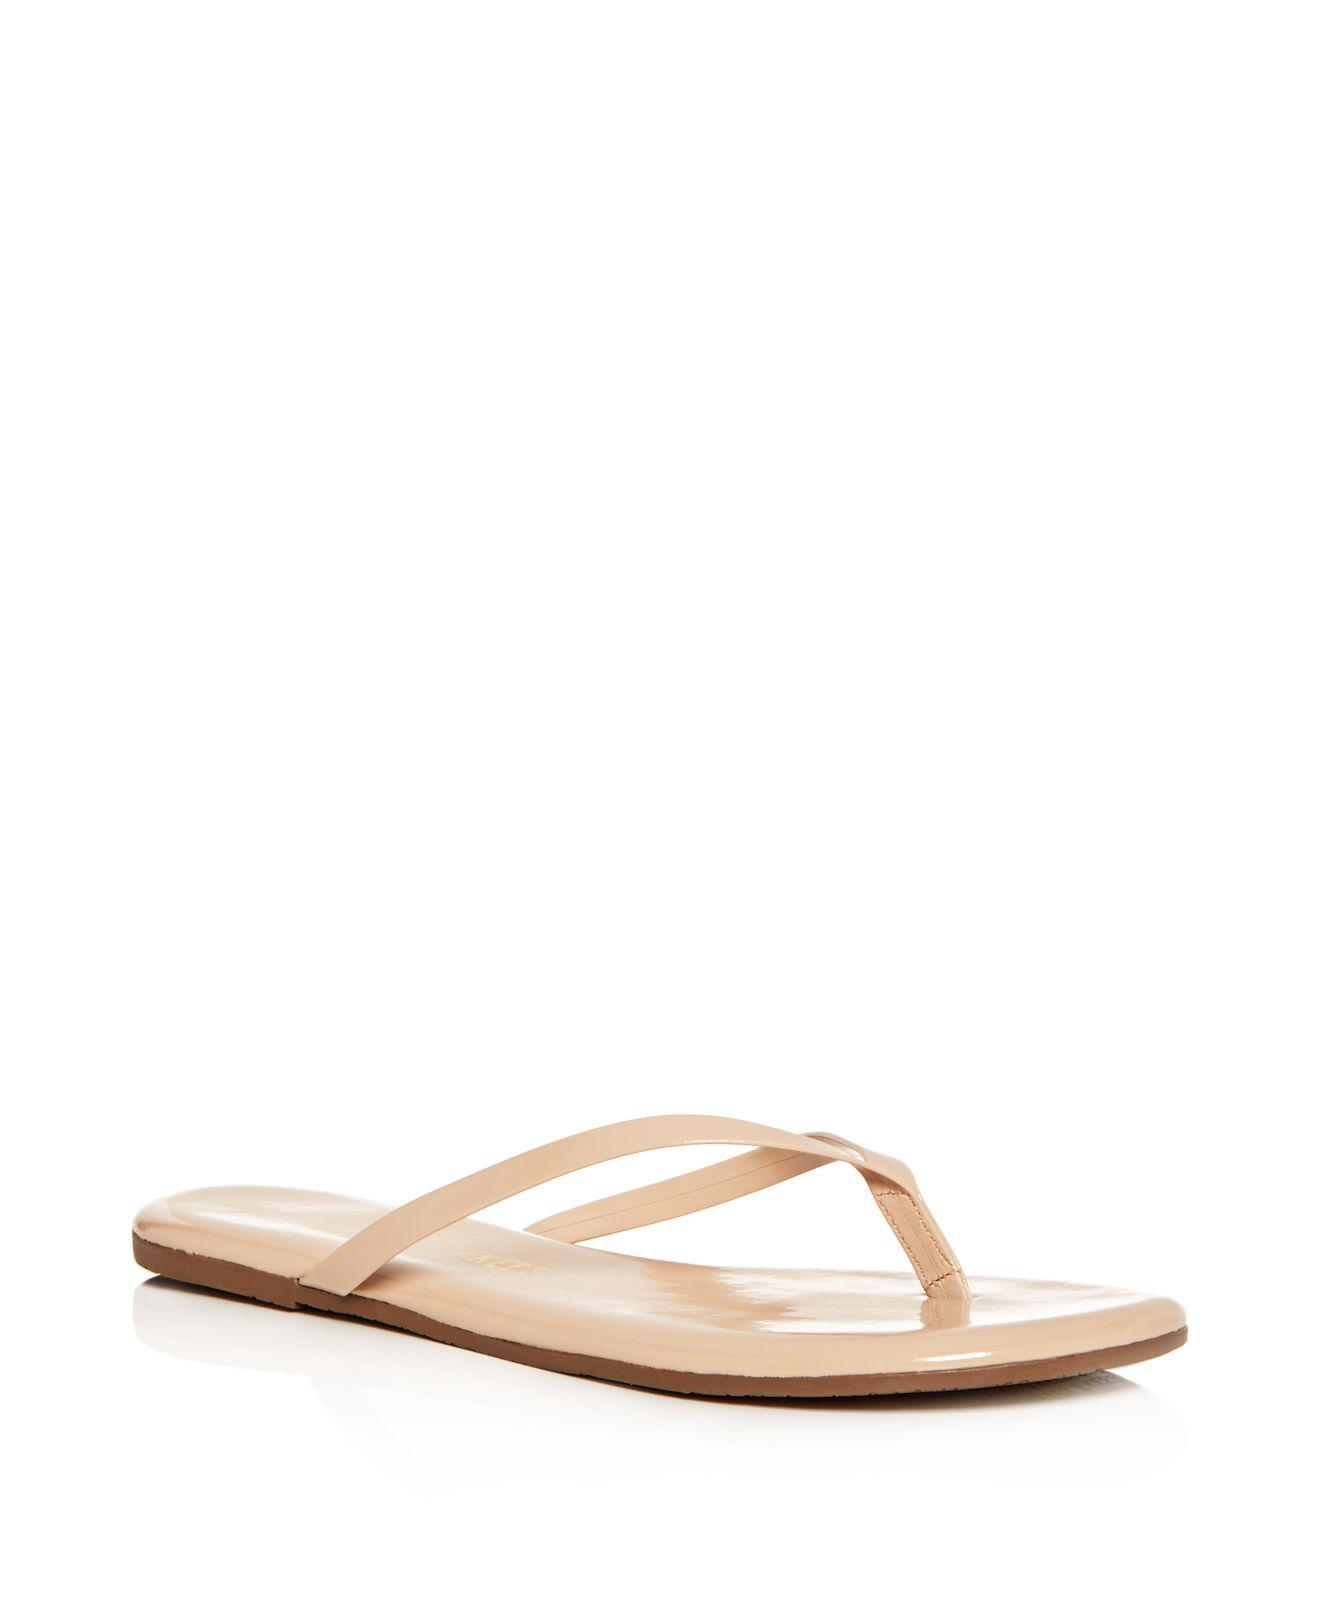 Tkees Women's Foundations Gloss Patent Leather Flip-Flops gnT9cRHFK